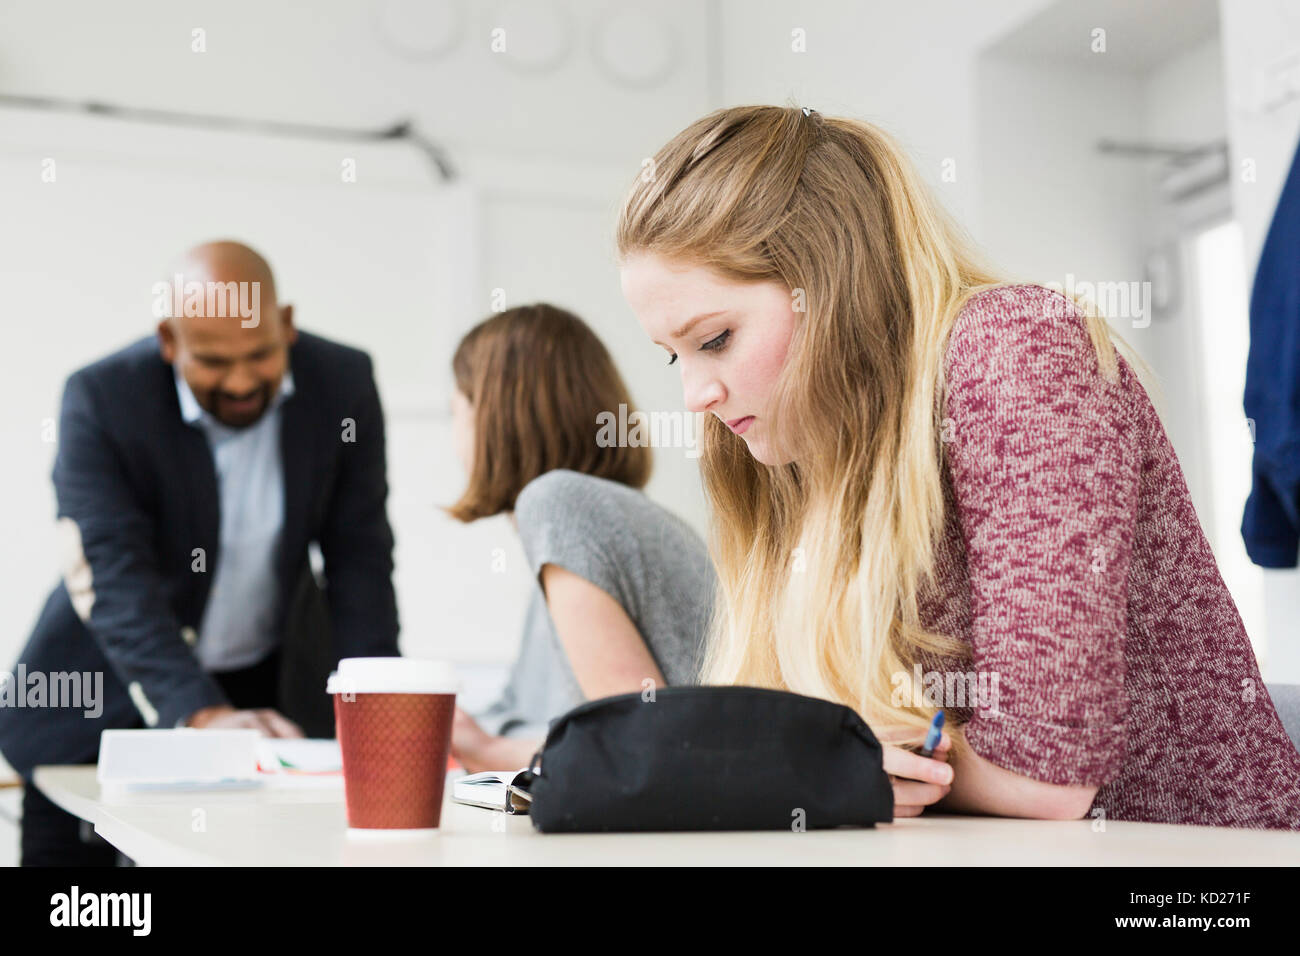 Students (16-17) and teacher in classroom - Stock Image